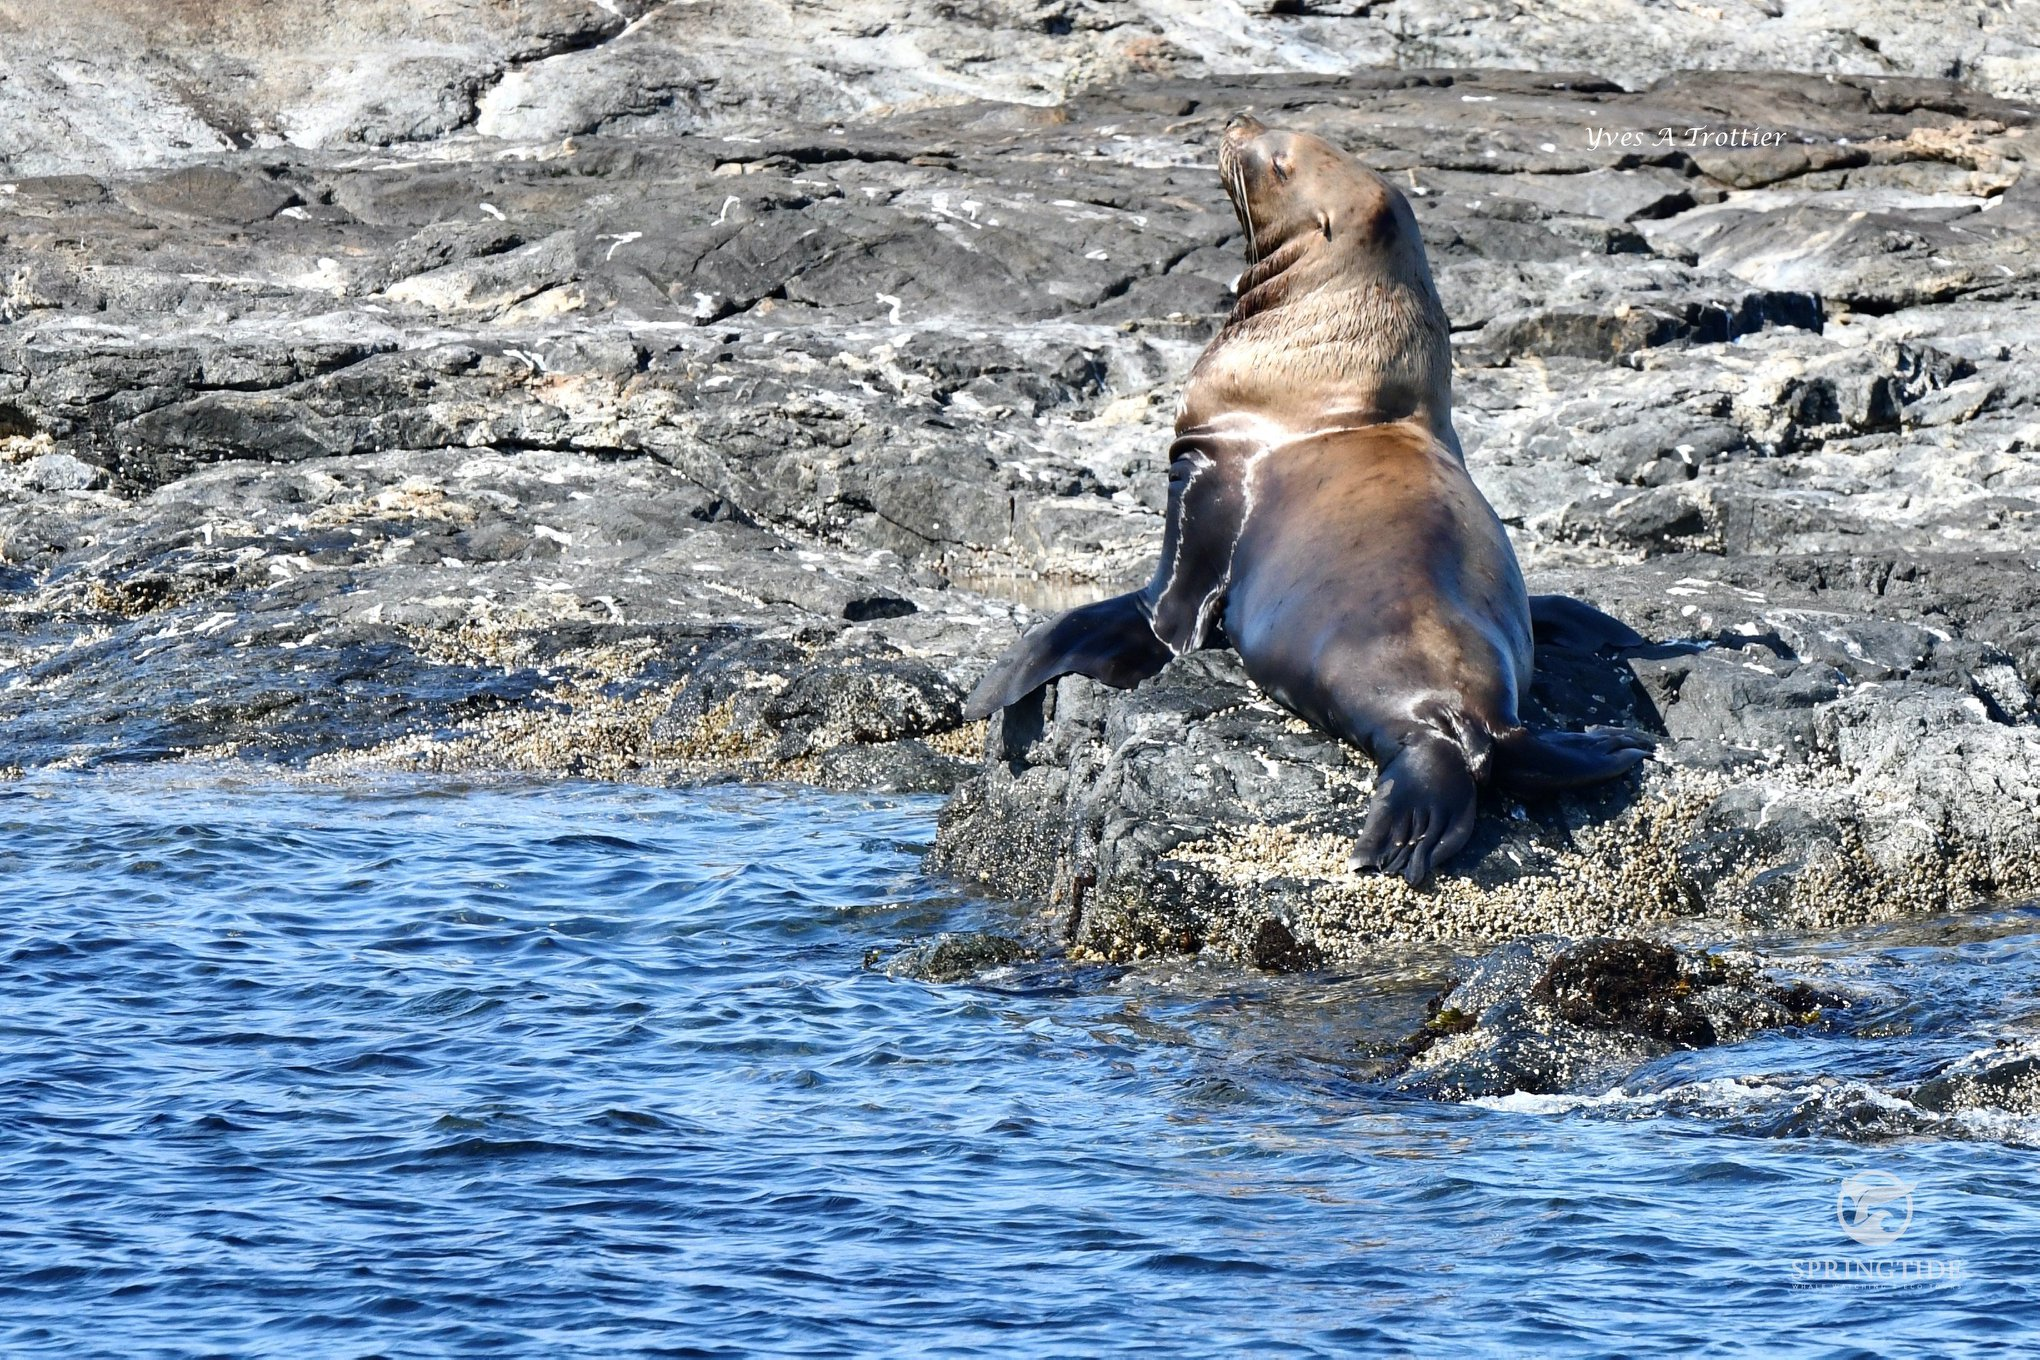 A beautiful Sea Lion sunny itself to warm up from the cold pacific waters.